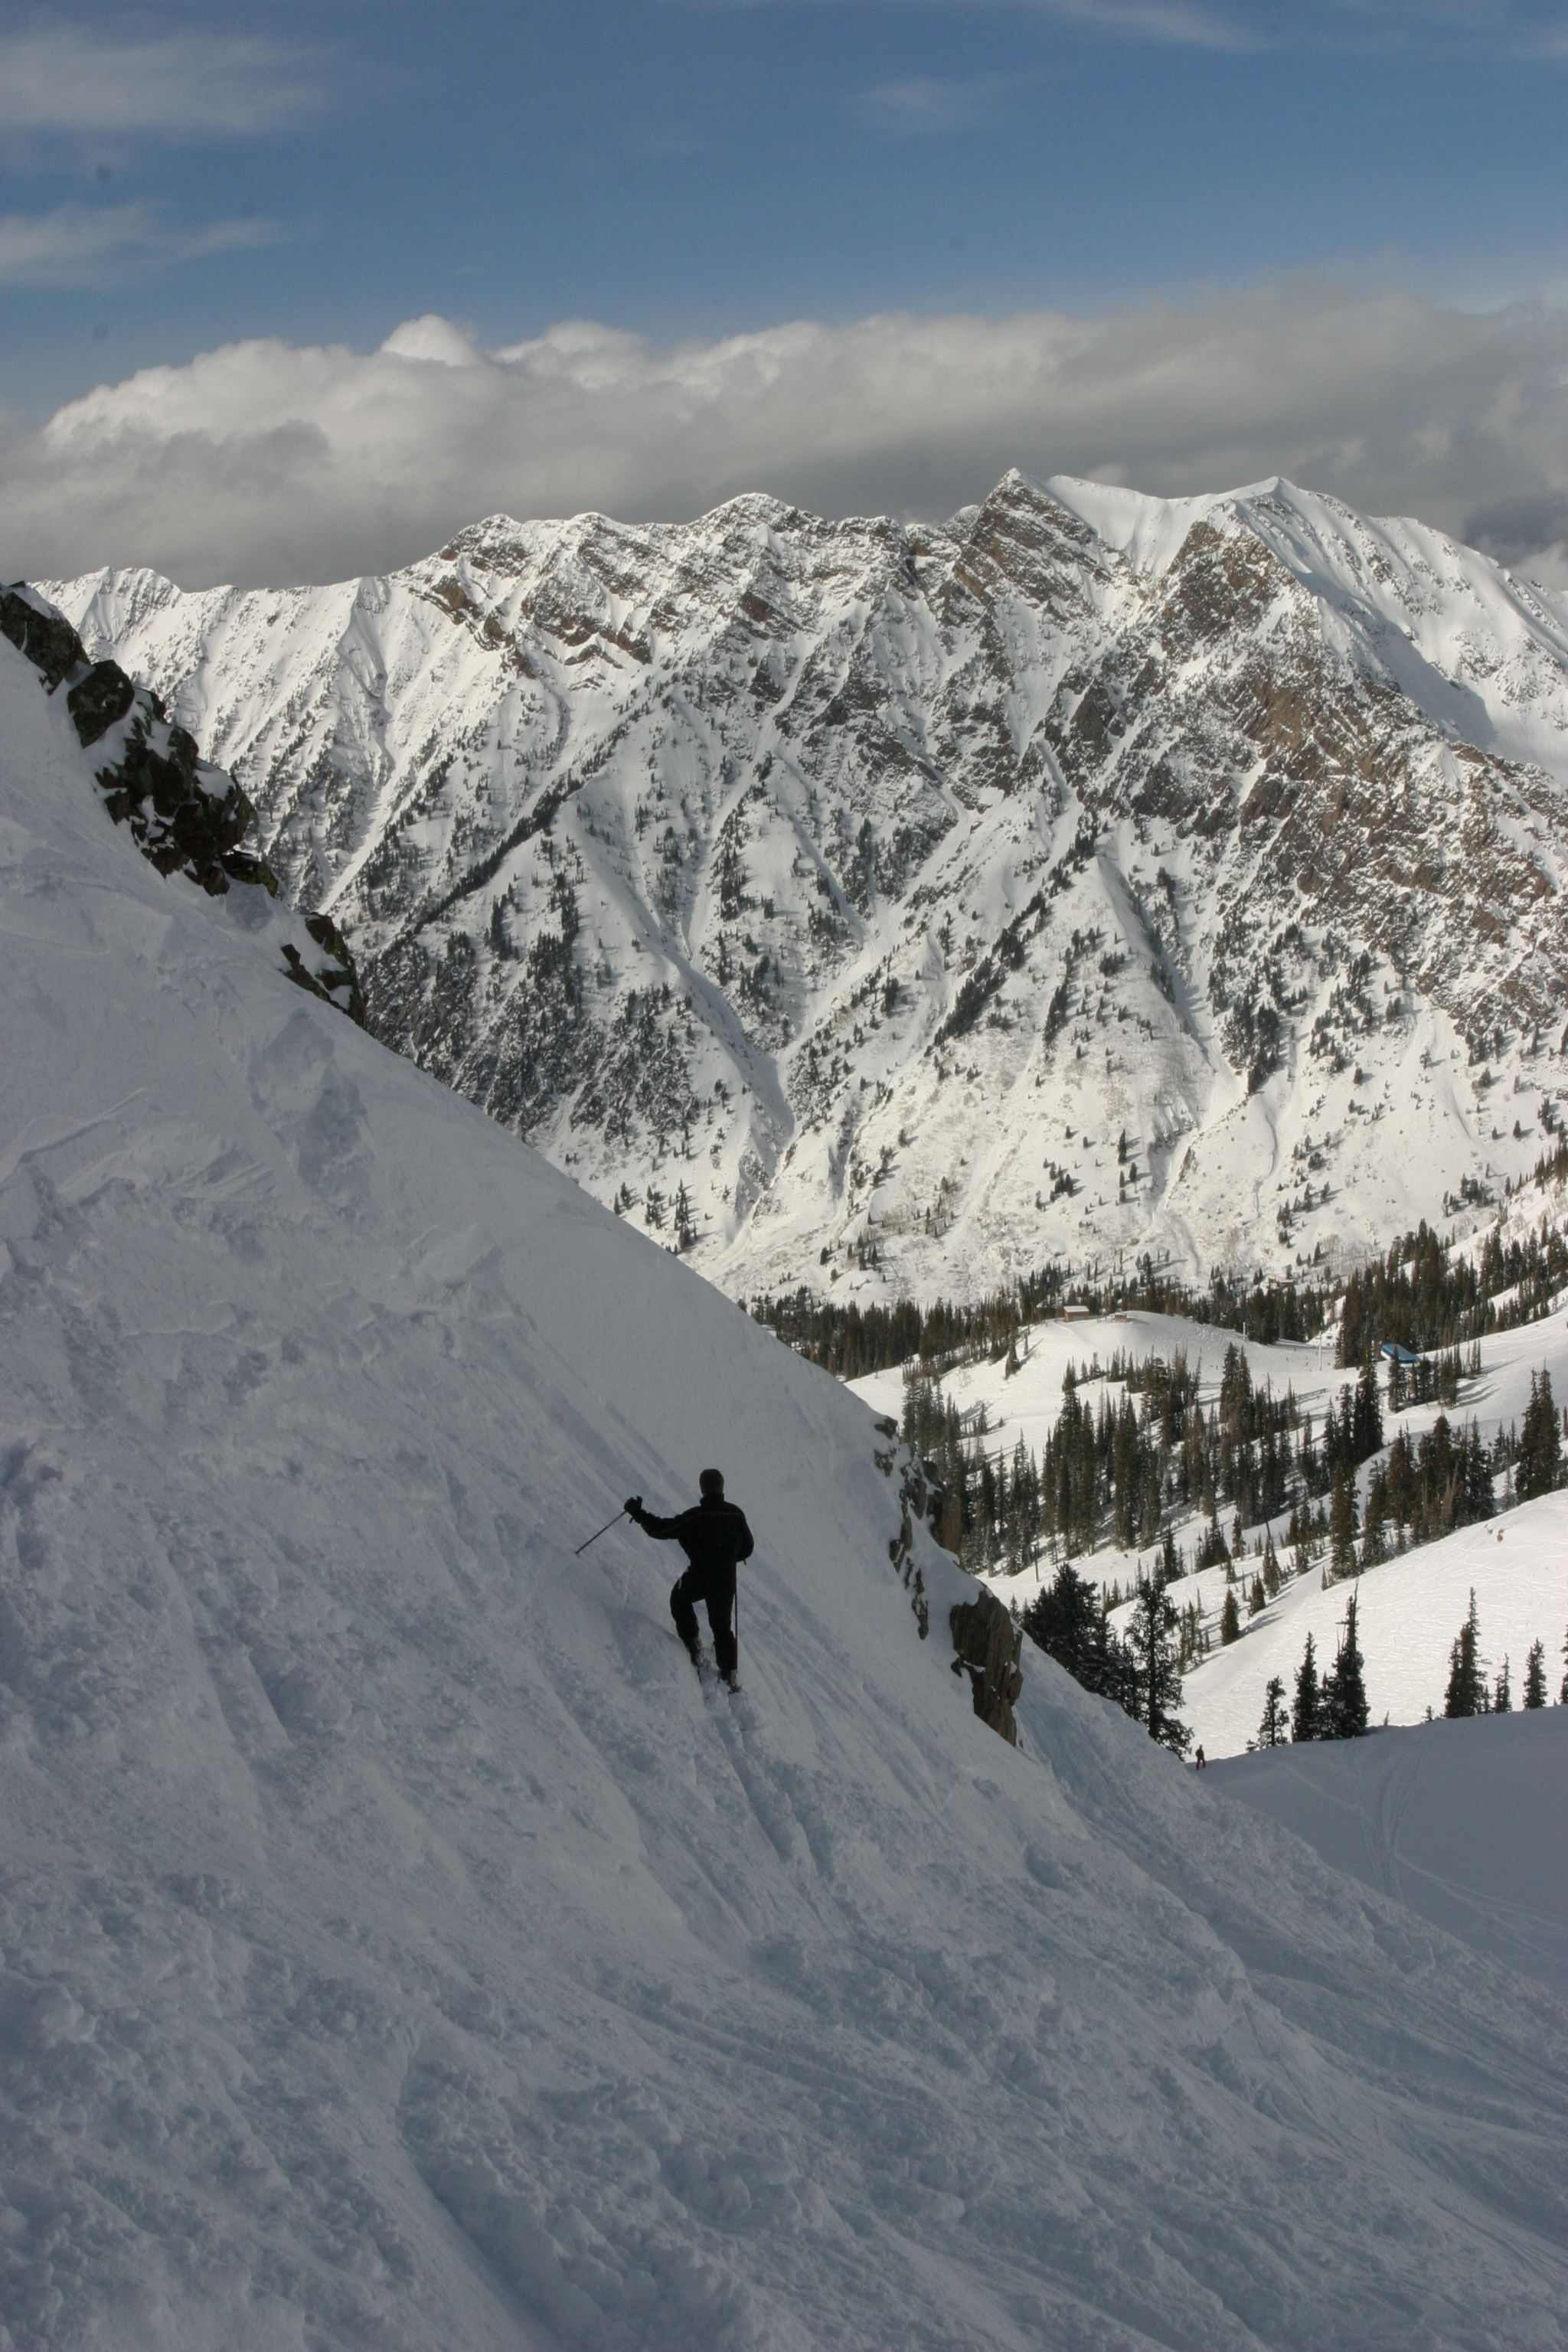 Backcountry Skiing In Utah S Wasatch Mountains Photo Taken By Edcutah S Own Jeff Edwards Mountain Photos Backcountry Skiing Scenic